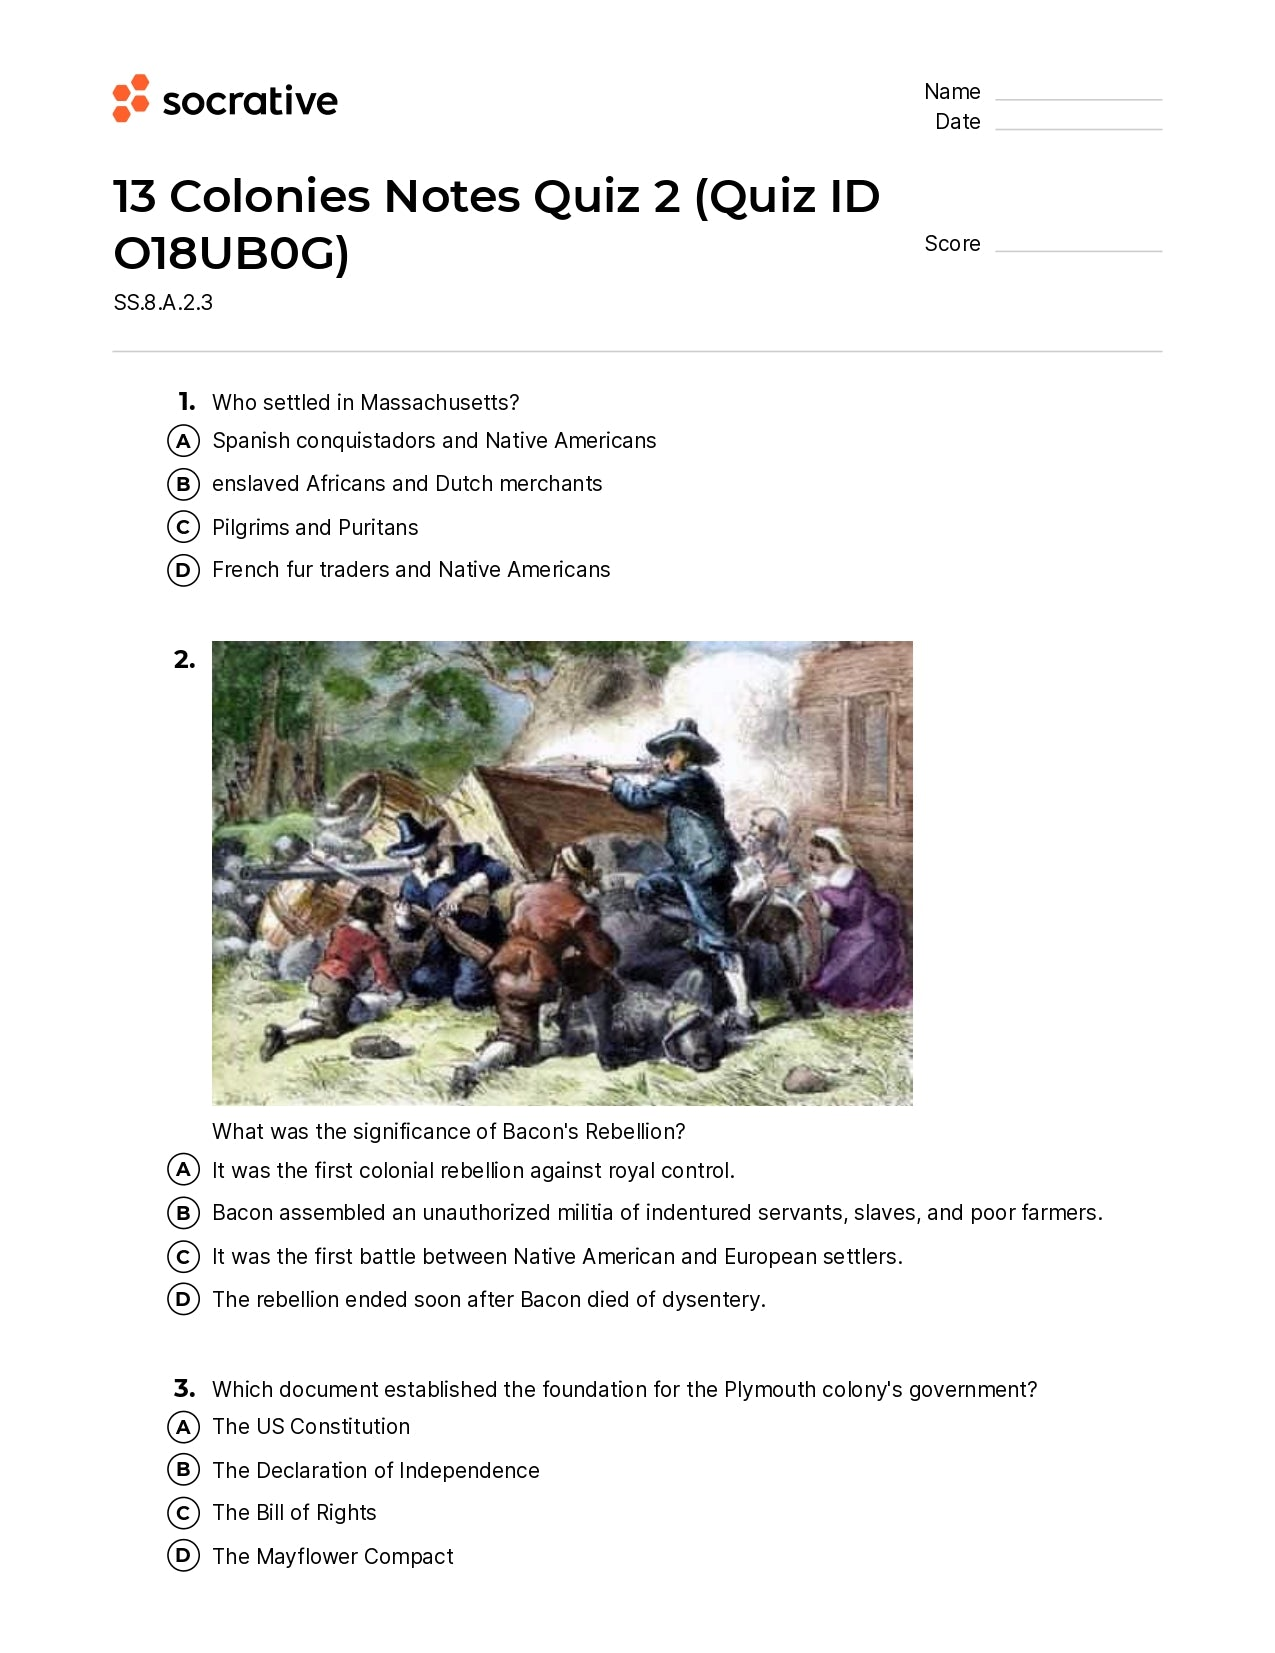 13 Colonies Notes Quiz 2